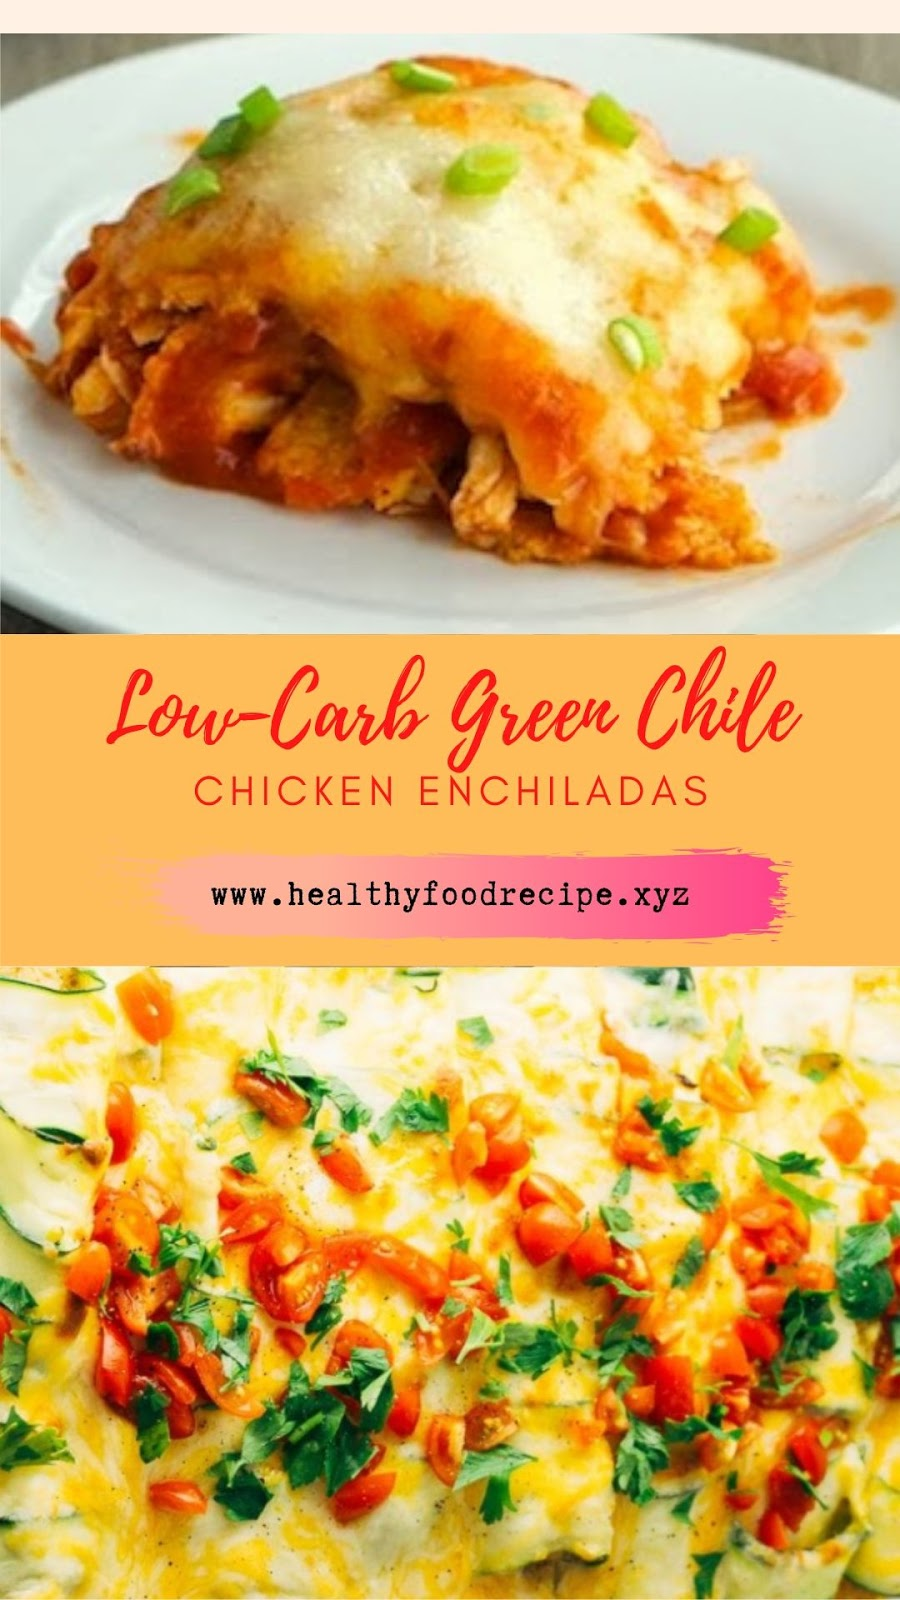 Low-Carb Green Chile Chicken Enchiladas